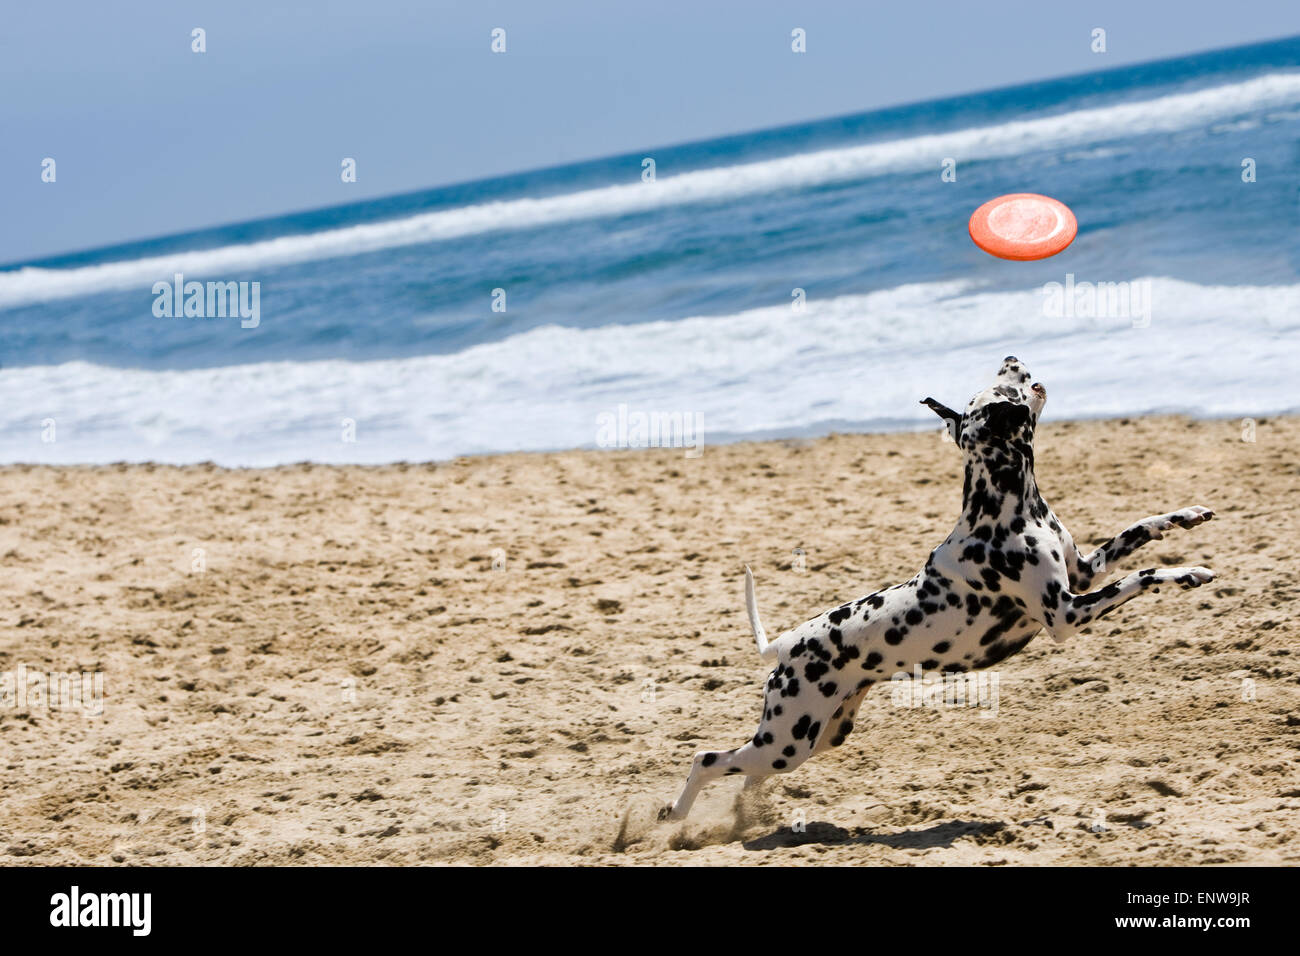 Dalmatian dog running and jumping for frisbee at beach in sand with ocean and blue sky in background on a sunny - Stock Image